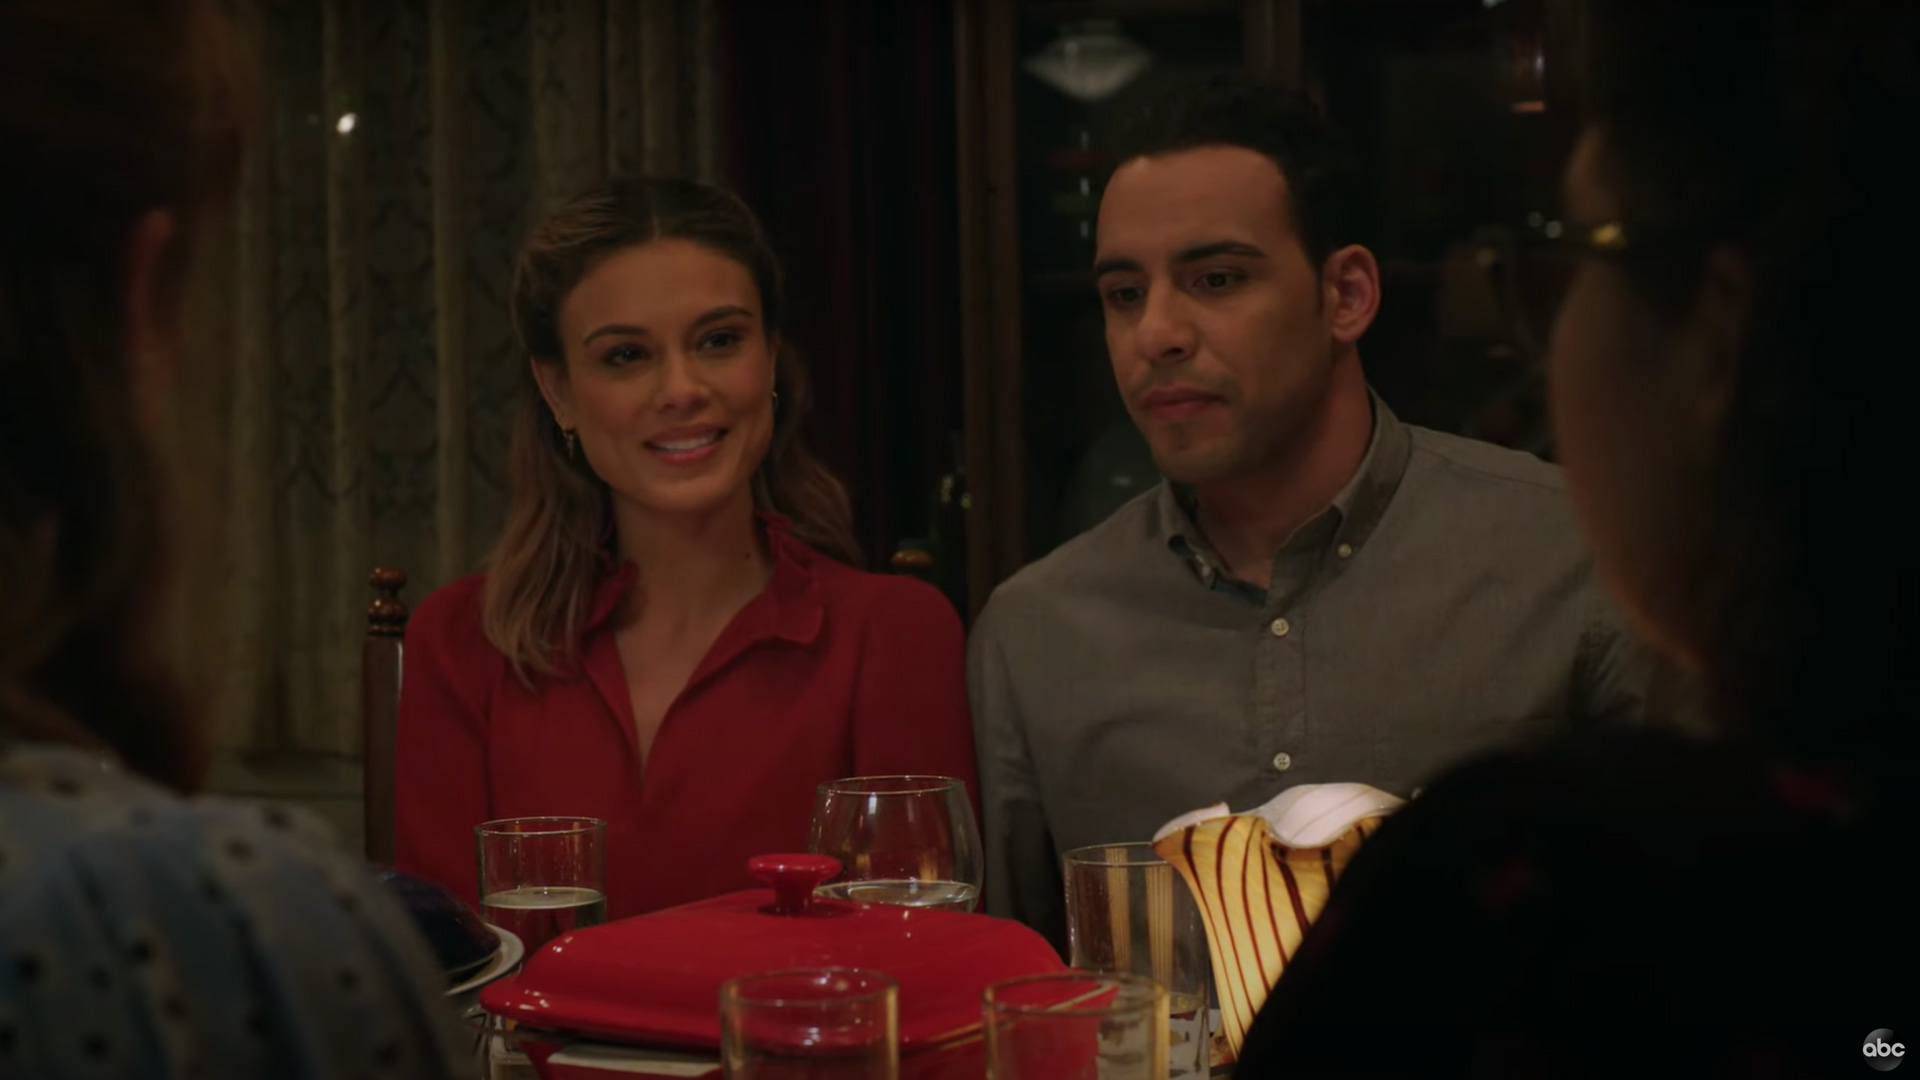 Actors Nathalie Kelley and Victor Rasuk sit side-by-side in a scene from the TV series The Baker and the Beauty.